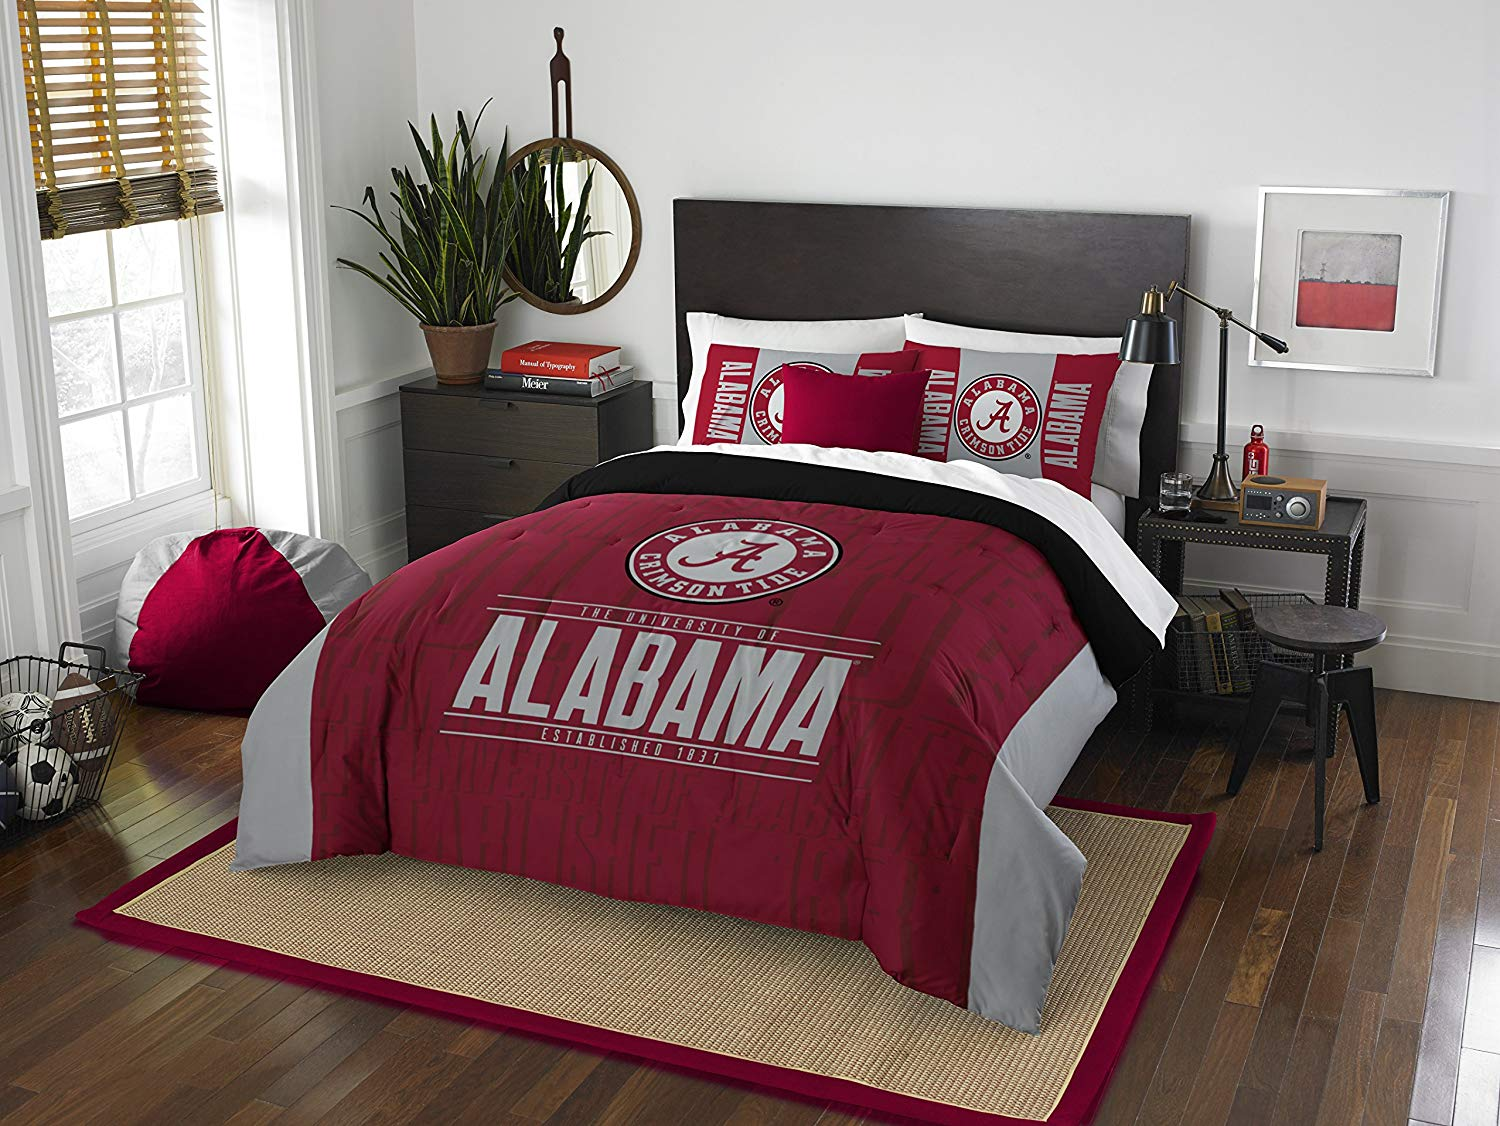 Alabama Crimson Tide 7 PC FULL SIZE Printed Comforter Bedding Set & w/ NEW Team Anthem Colored Sheets: (1 Full Size Comforter, 1 Flat Sheet, 1 Fitted Sheet, 2 Pillow Cases, 2 Pillow Shams)